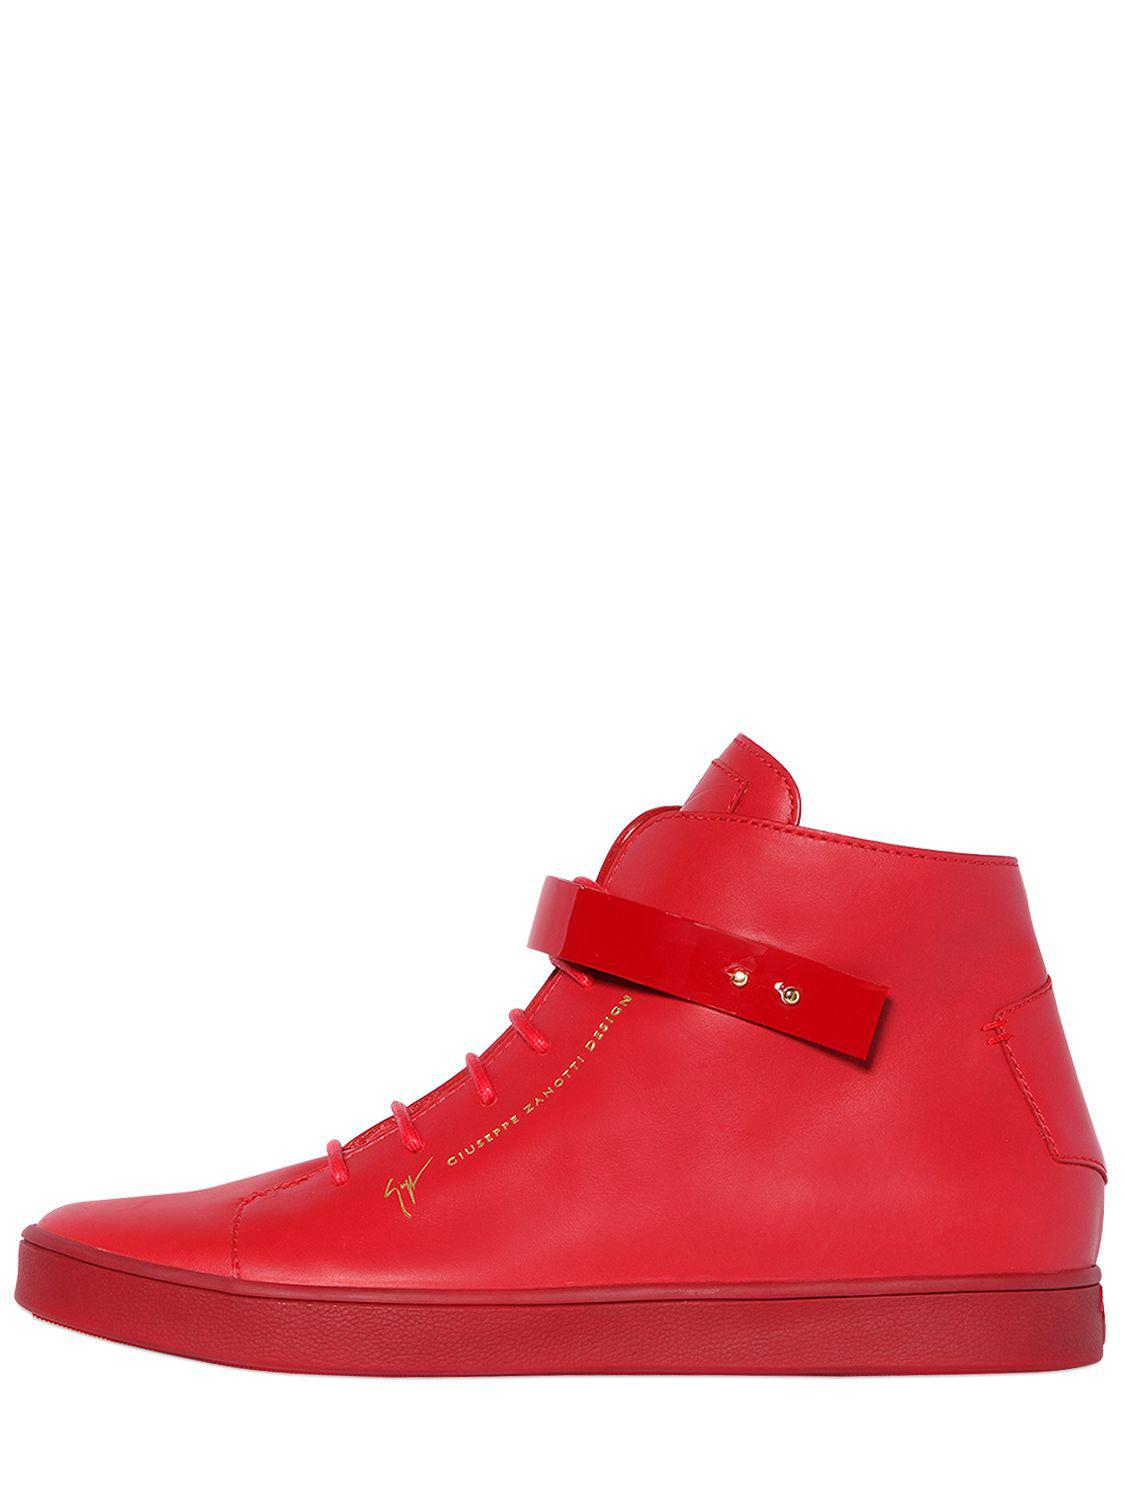 Giuseppe ZanottiPATENT BANGLE BRUSHED LEATHER SNEAKERS